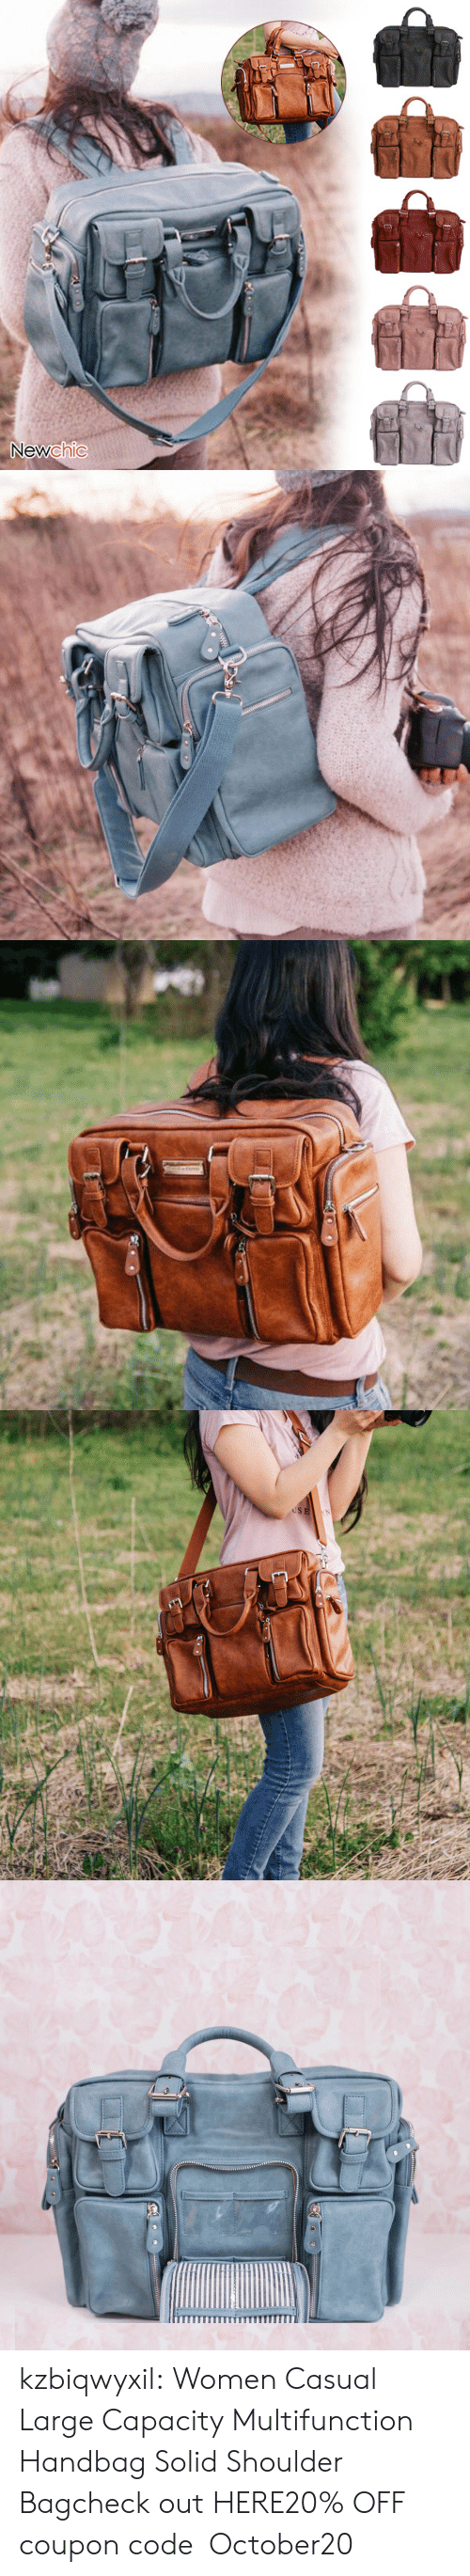 Tumblr, Blog, and Women: Newchic   USE kzbiqwyxil:  Women Casual Large Capacity Multifunction Handbag Solid Shoulder Bagcheck out HERE20% OFF coupon code:October20